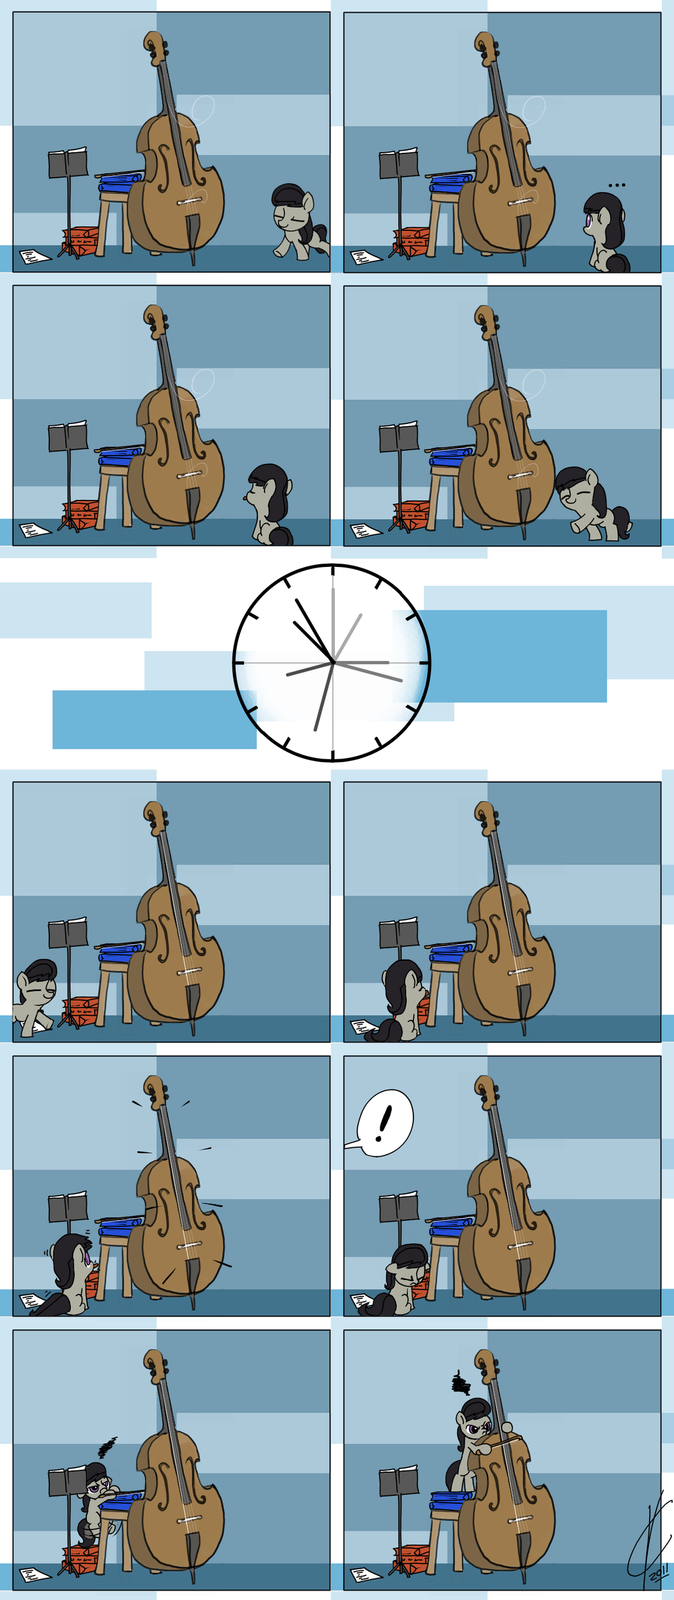 a_slice_of_life__octavia_4_by_dreatos-d40vrd3.png